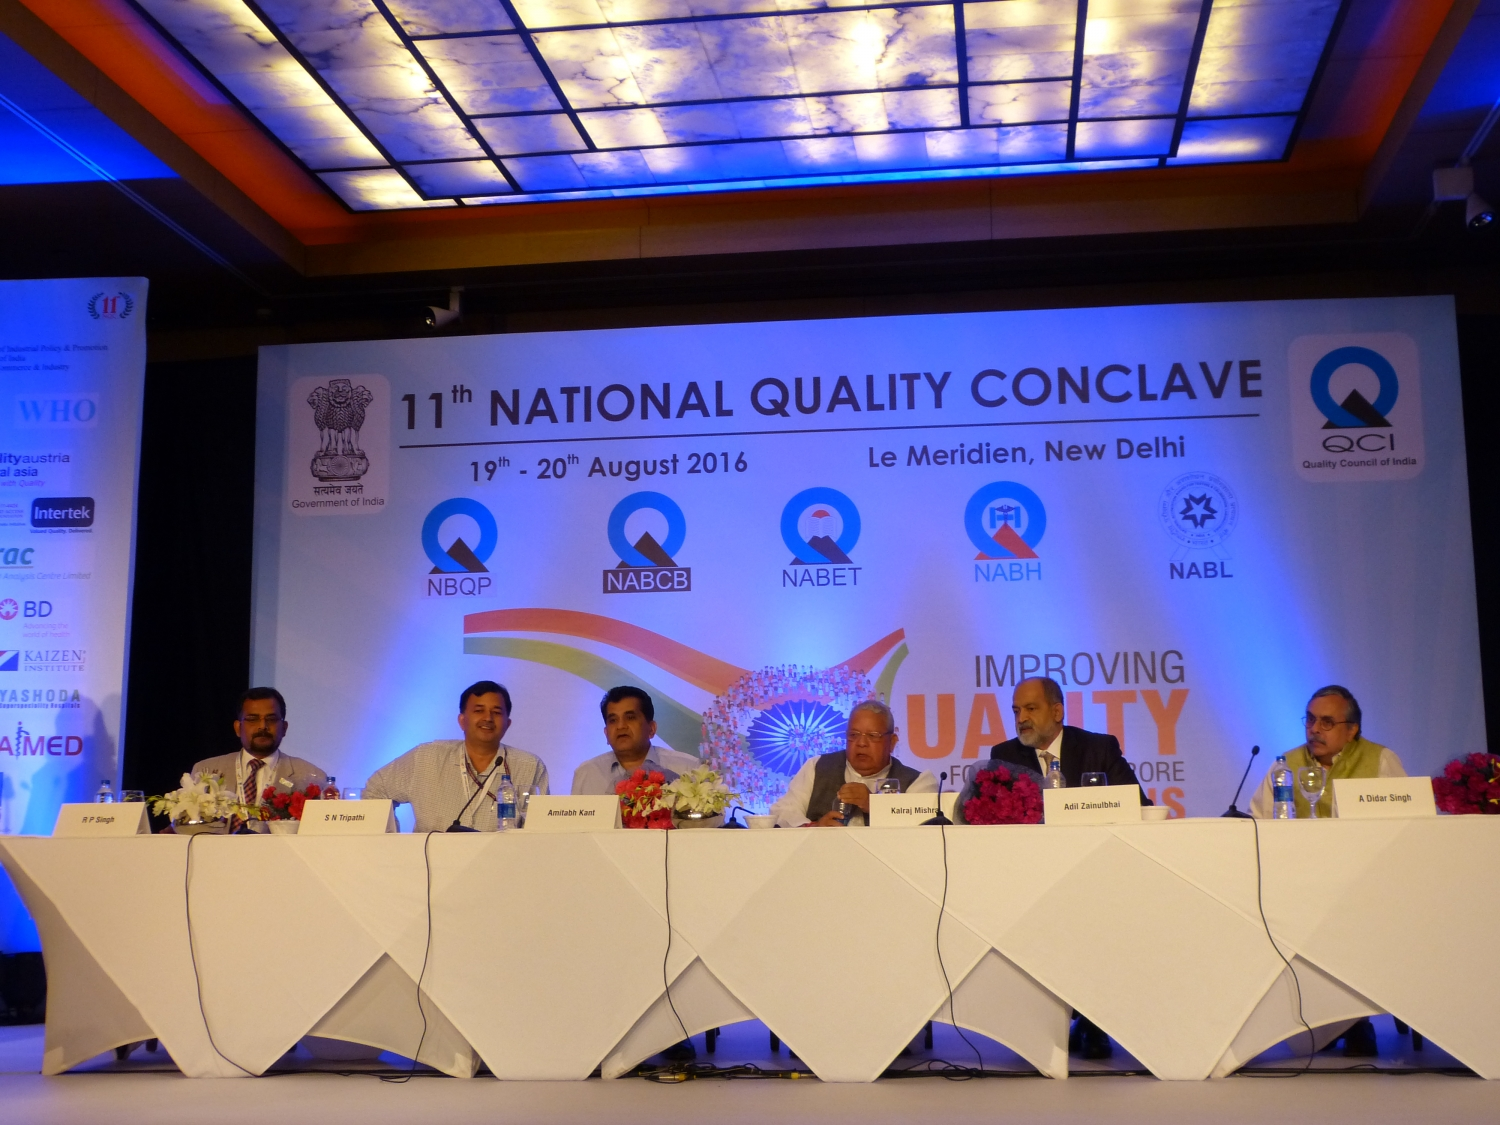 De gauche à droite:  Dr. Ravi P. Singh – Secretary General do Quality Council of Índia ; S. N. Tripathi - IAS, Addl. Sec & DC MSME ; Amitabh Kant - IAS, CEO NITI AAYOG ; Dr. Kalraj Mishra - Hon'ble Minister of MSME ; Adil Zanulbhai - Chairman of the Quality Council of India ; Dr. A. Didar Singh - IAS, Secretary General of FICCI